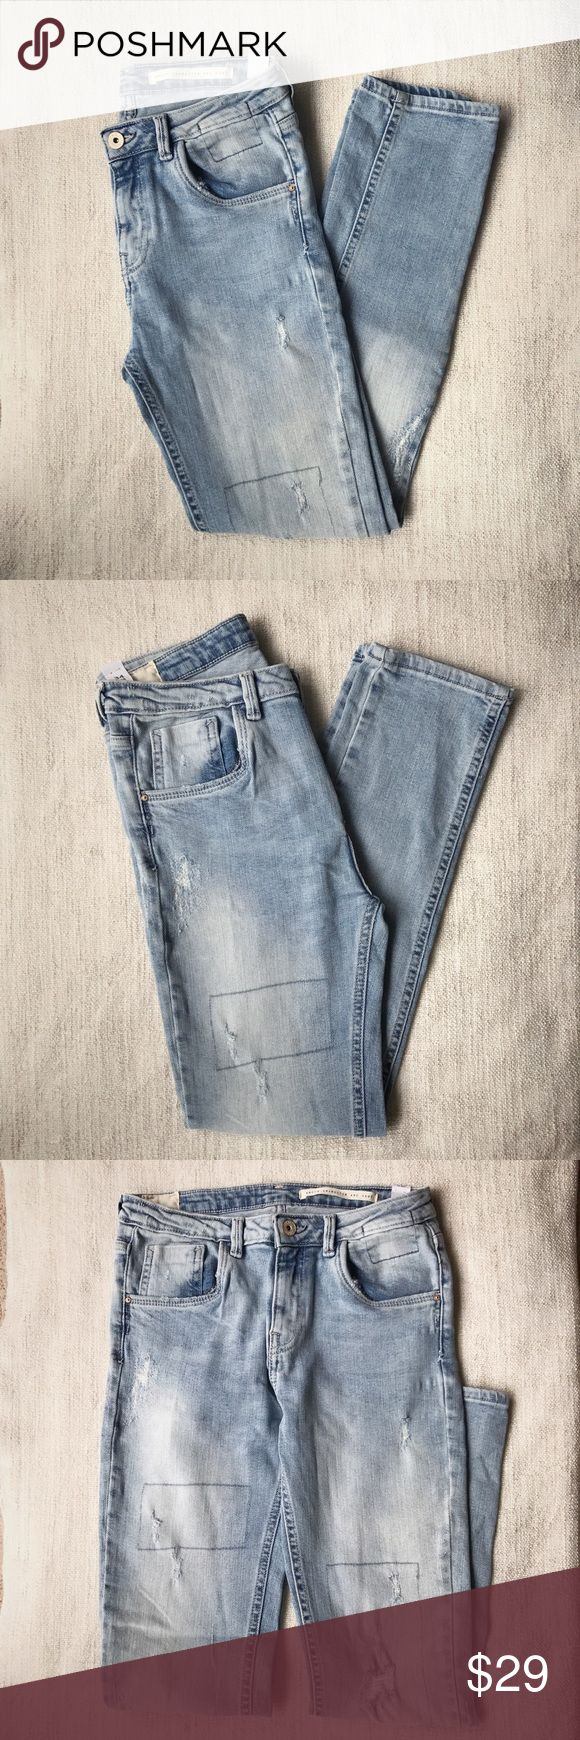 Zara Jeans - dames - denim broek slouchy charactor brand new with tag. not my style so decided to sell it. Zara Jeans